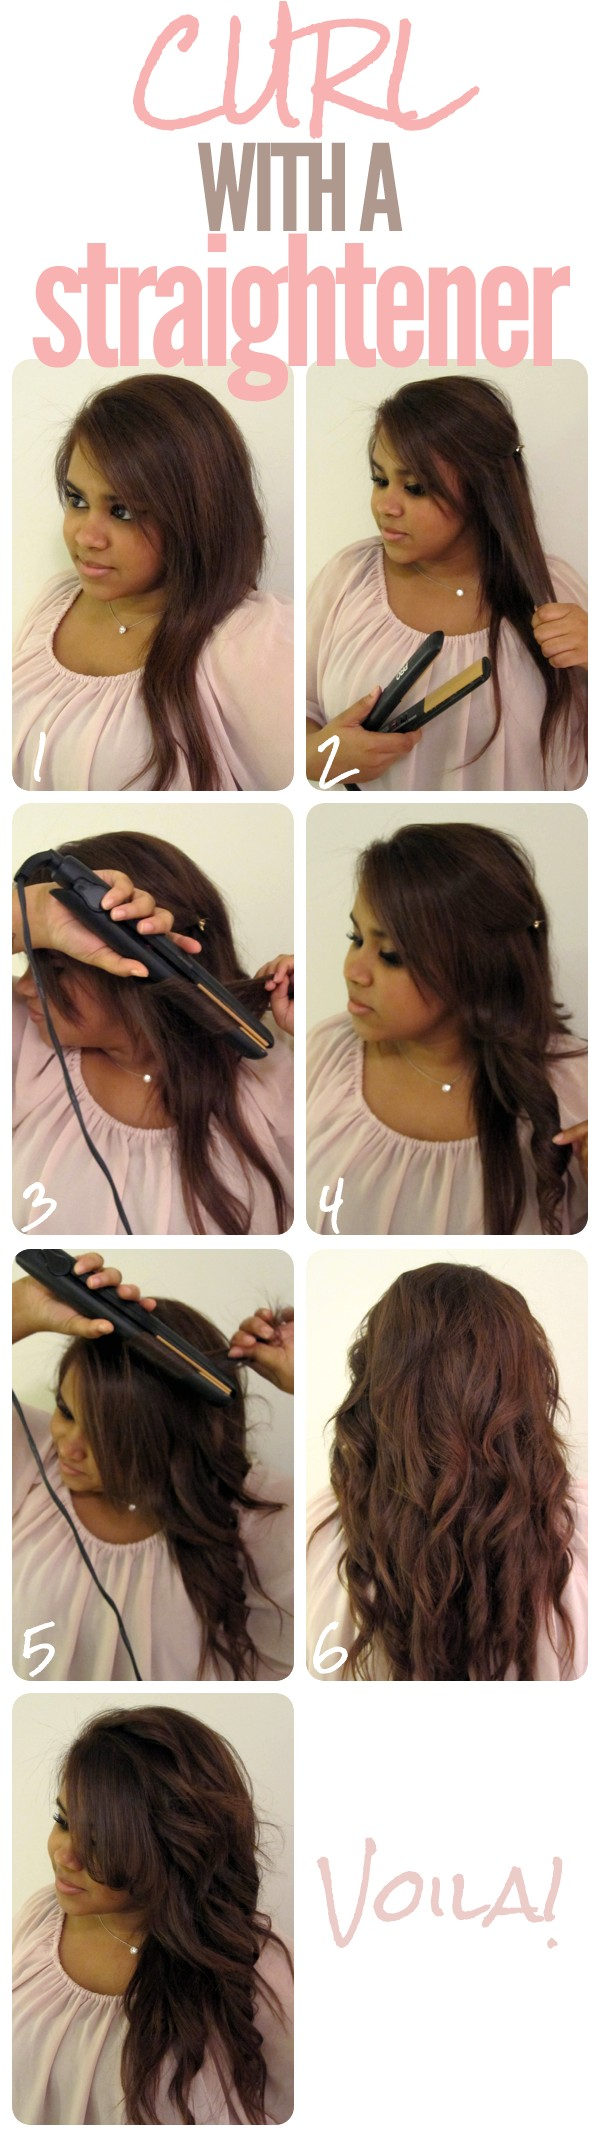 ideas for how to curl long hair with a straightener